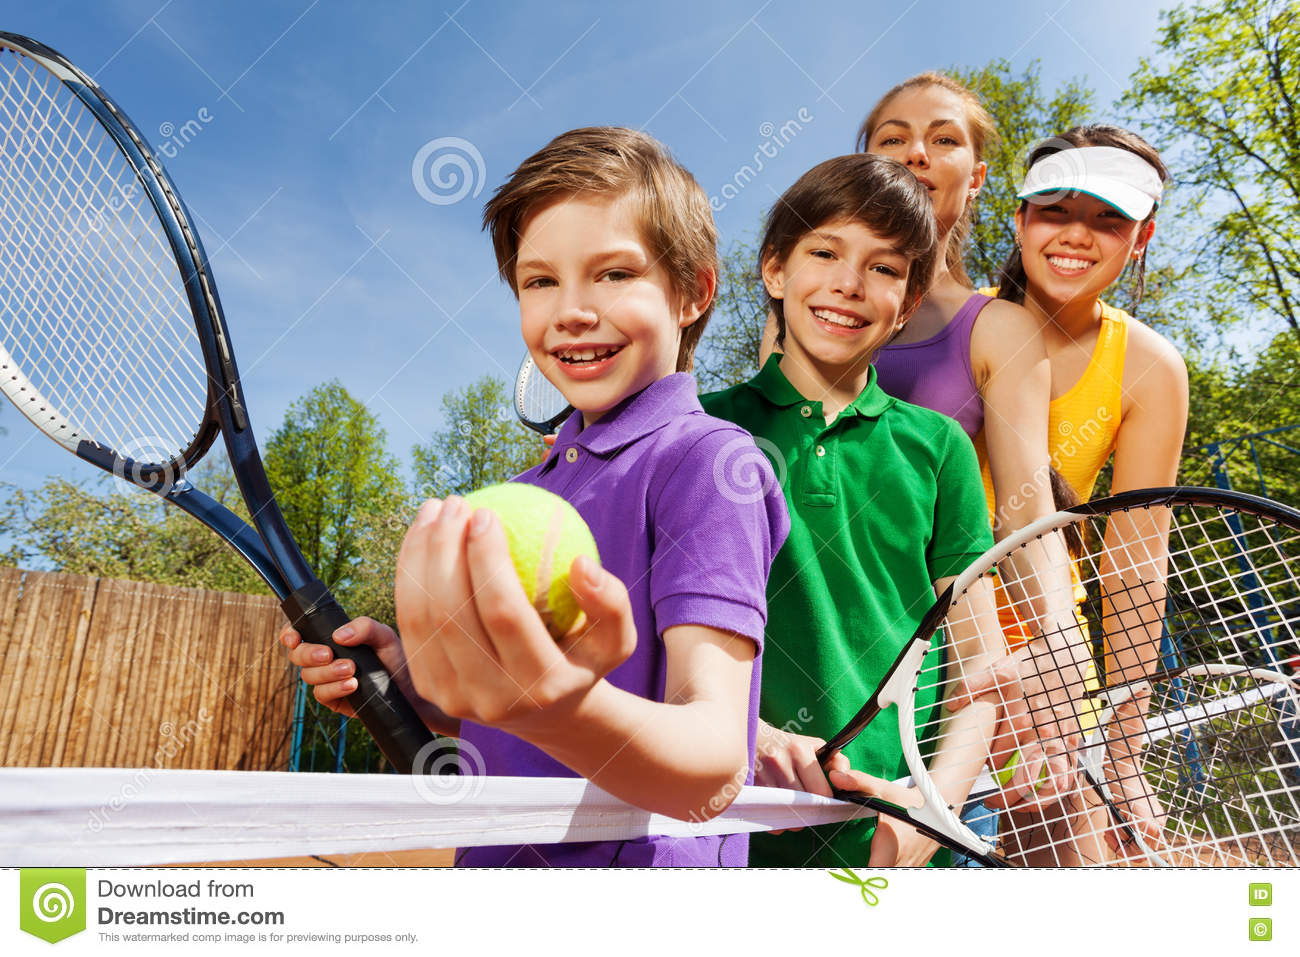 Family playing tennis holding rackets and ball